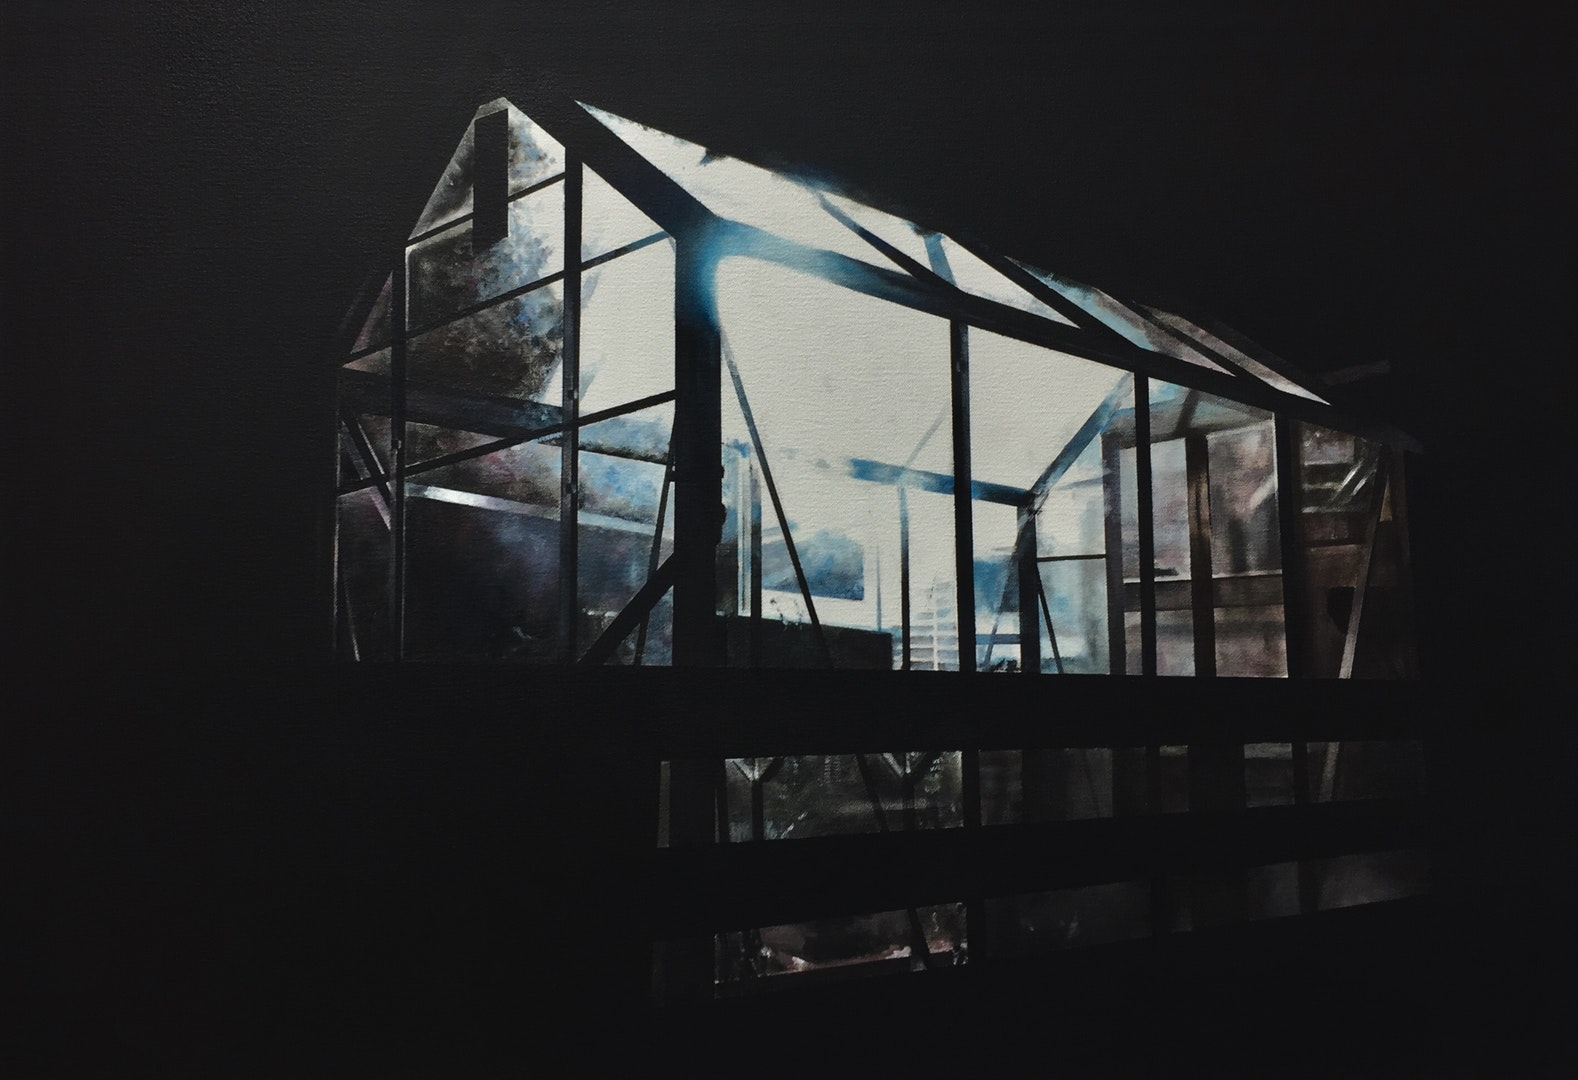 Christopher Campbell  Glass house  Oil on canvas, 45 x 65 x 3 cm  http://www.campbellpainter.co.uk